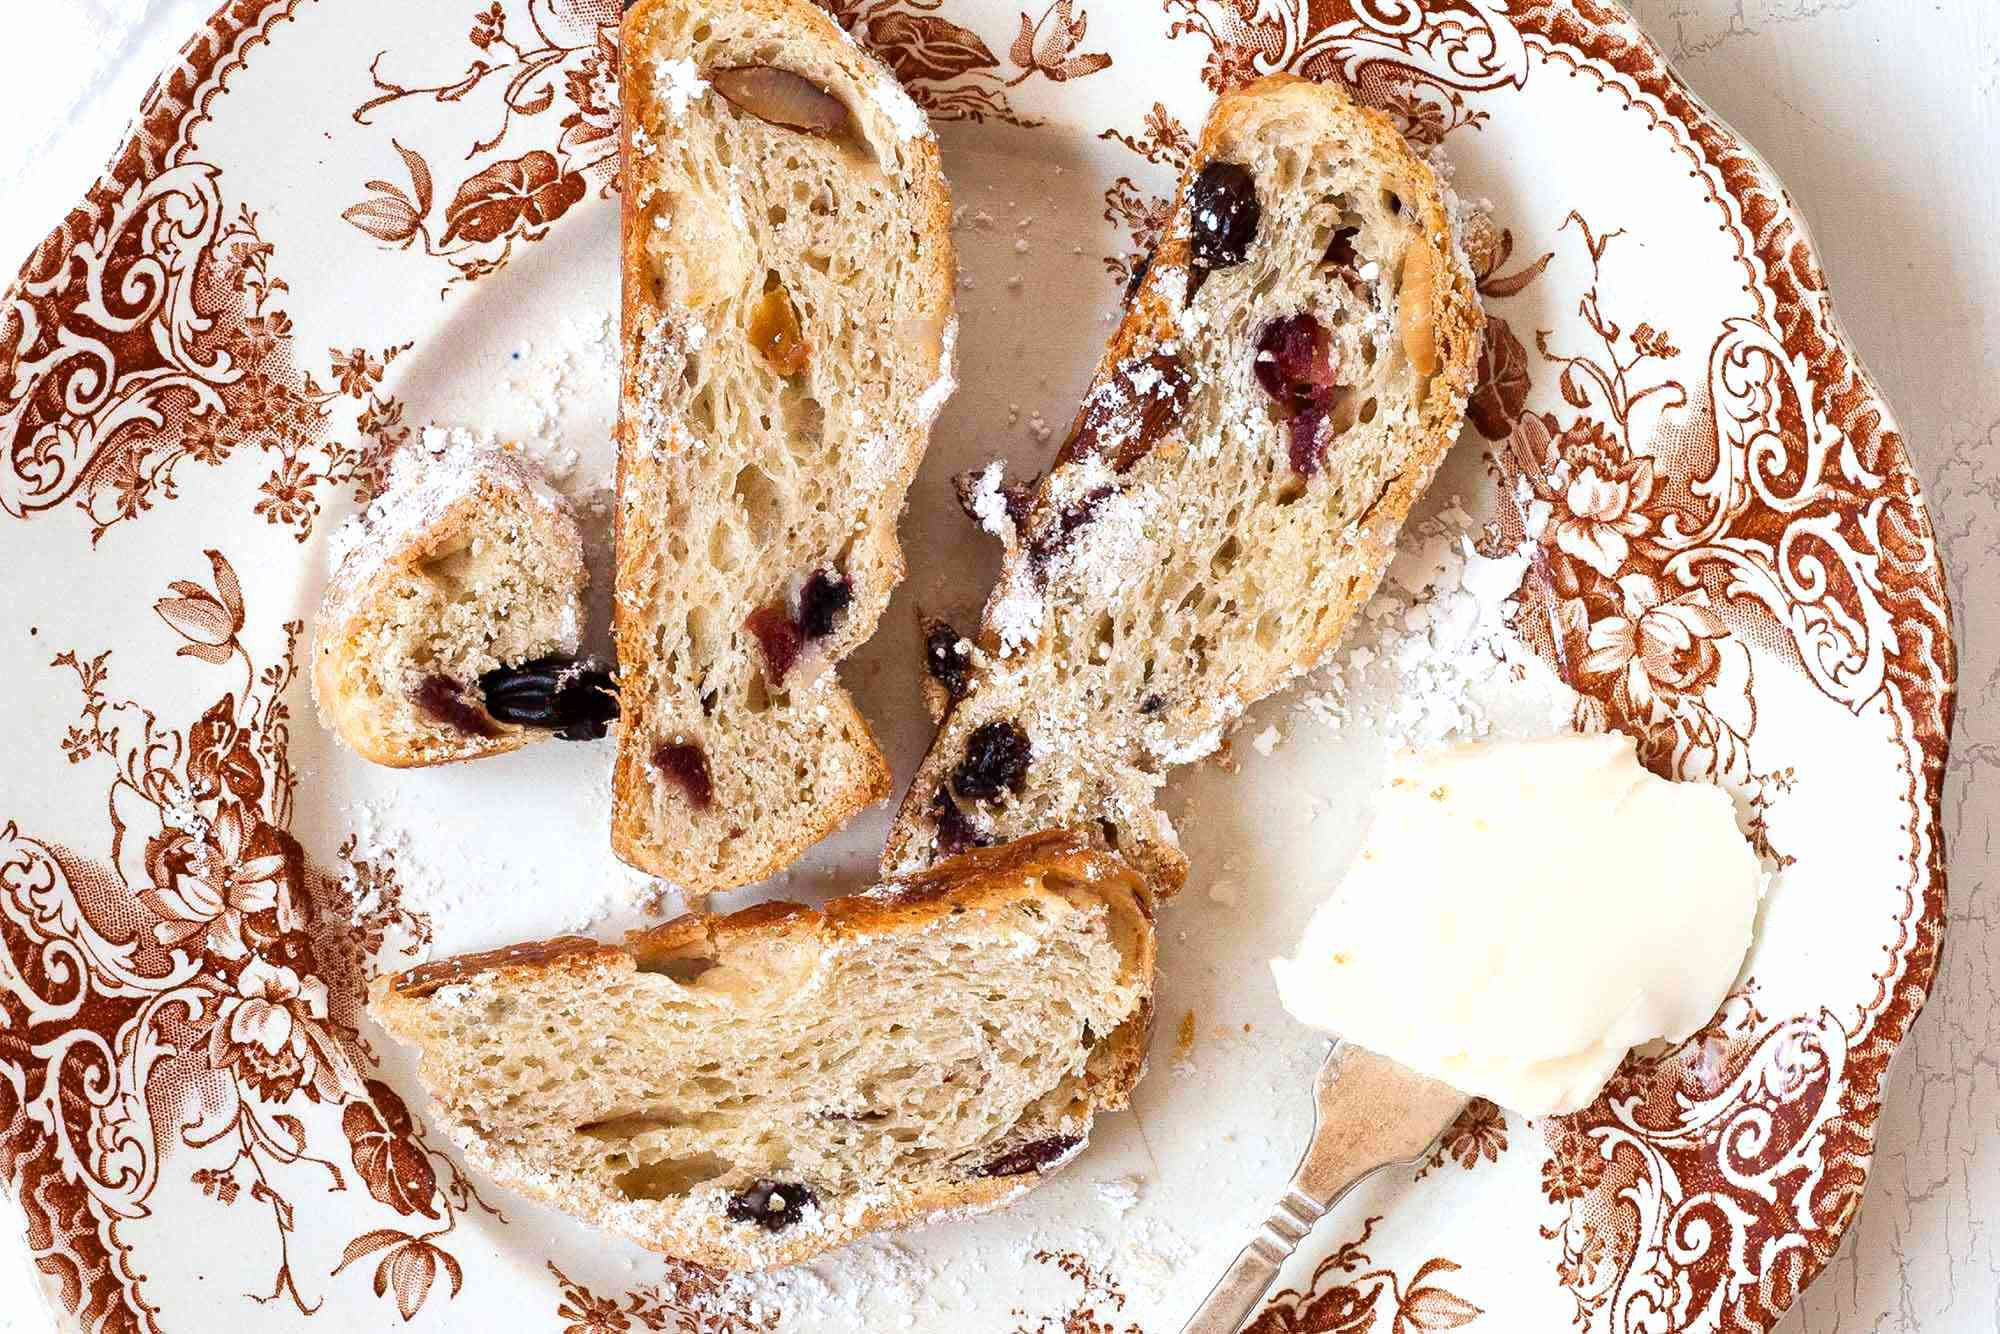 Stollen Christmas Bread filled with rum-soaked dried fruit coated with powdered sugar and sliced on a platter with a fine mesh sieve with powdered sugar in it nearby.